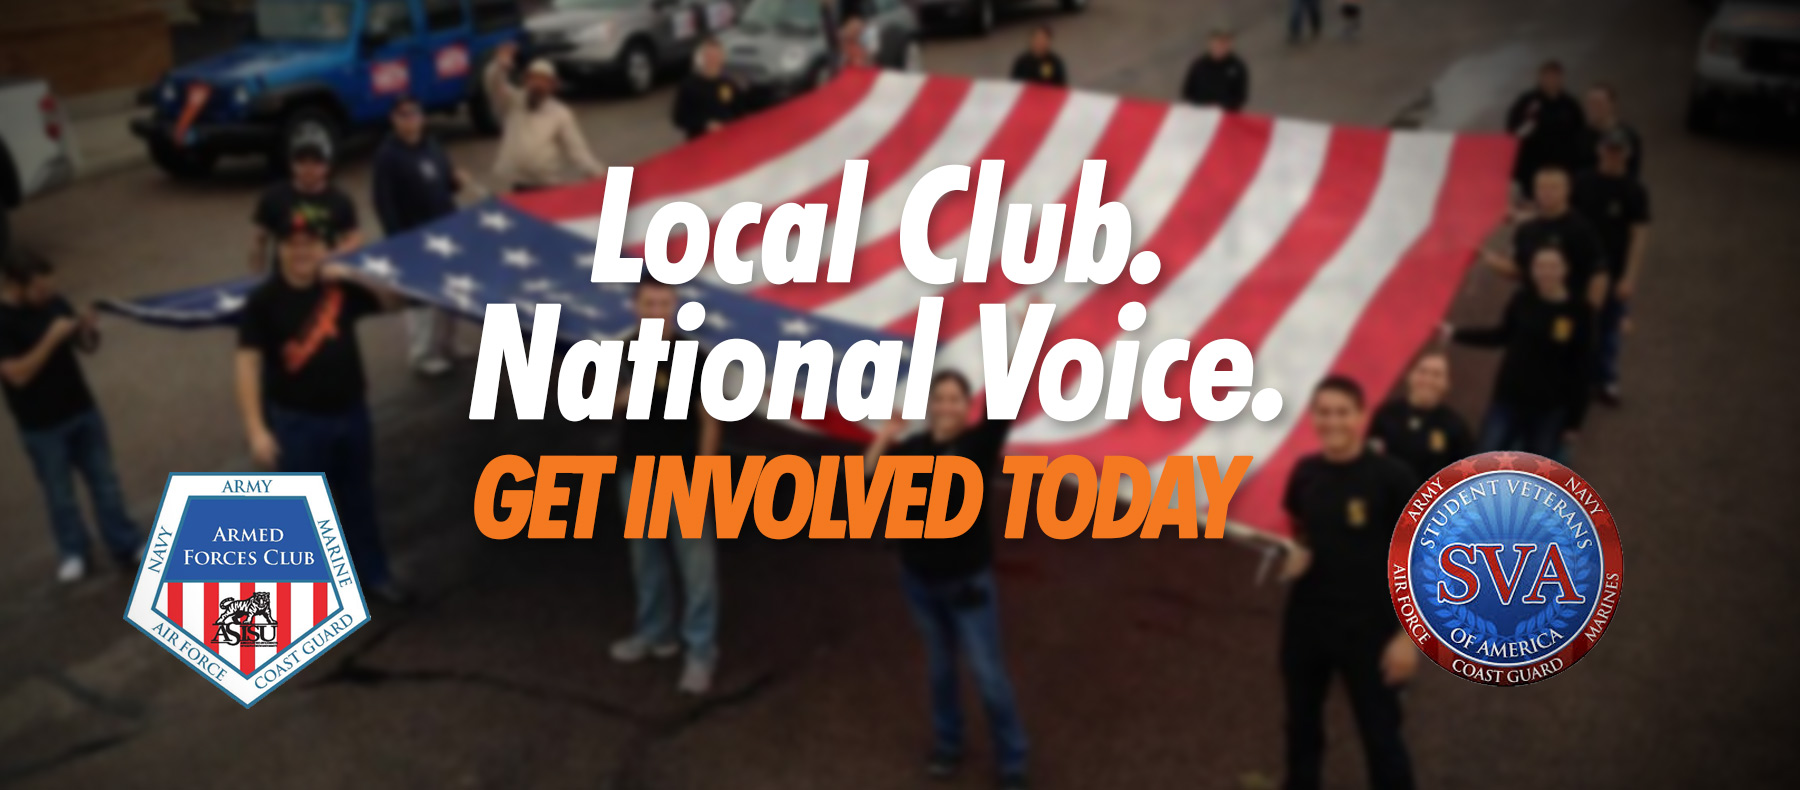 Student Veterans of America- Armed Forces Club; A local club with a national voice. Get Involved Today